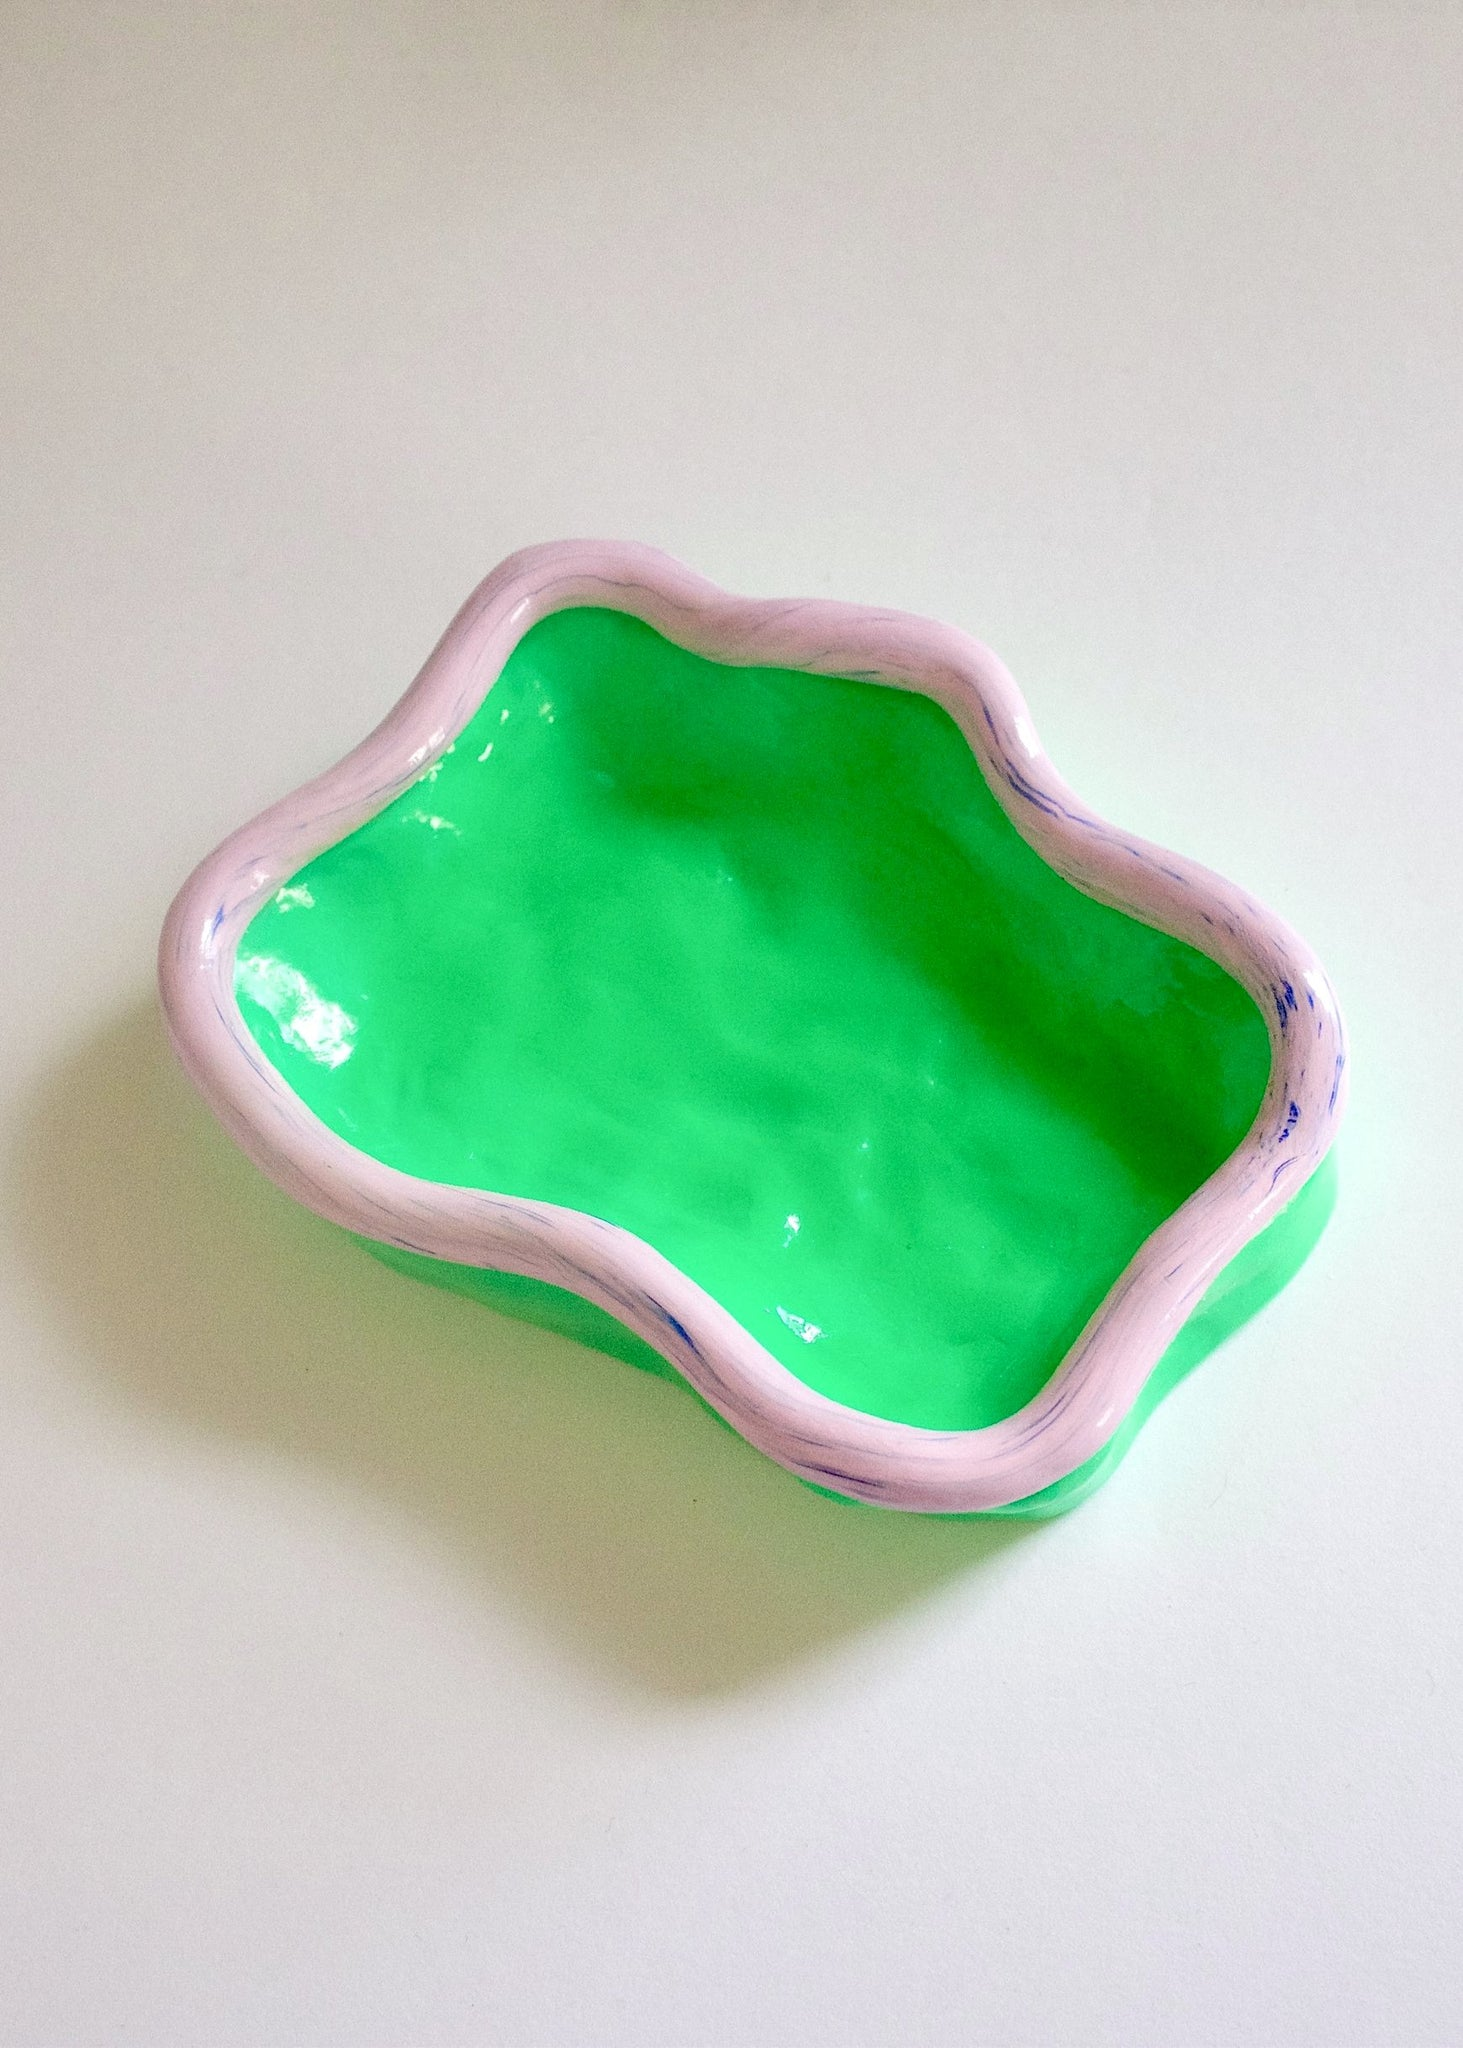 SQUIGGLE TRINKET DISH - GREEN/SPECKLED PINK